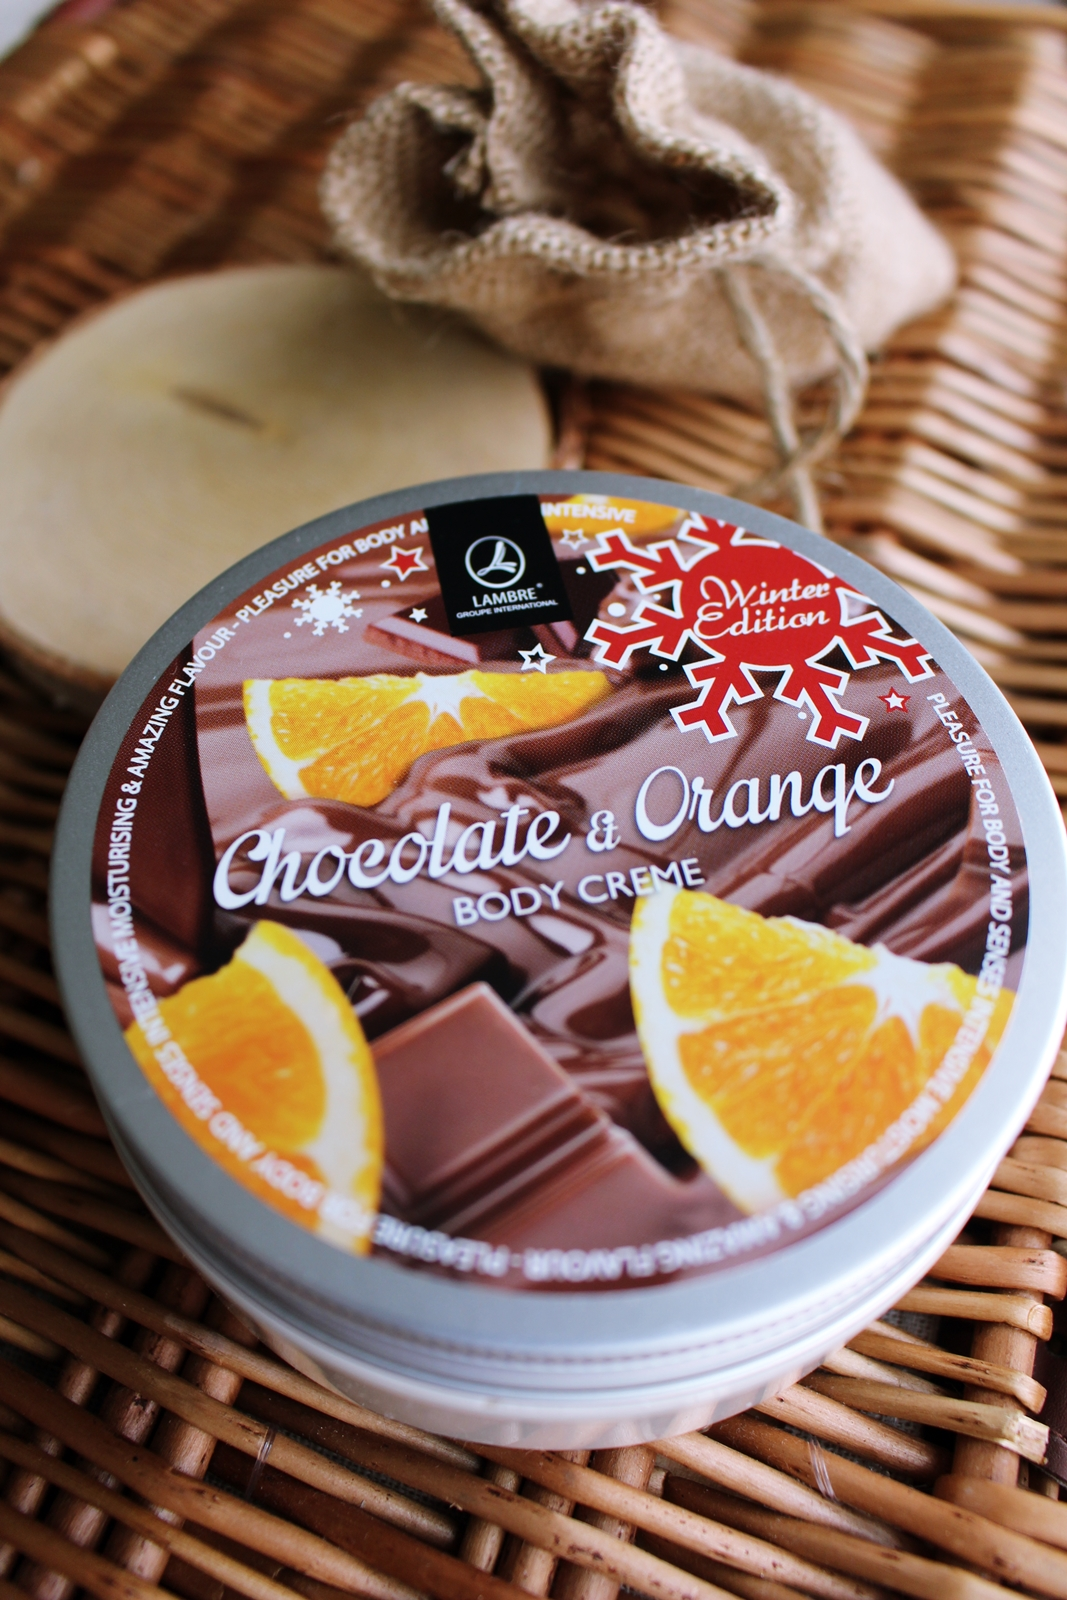 Lambre Body Creme Chocolate & Orange.